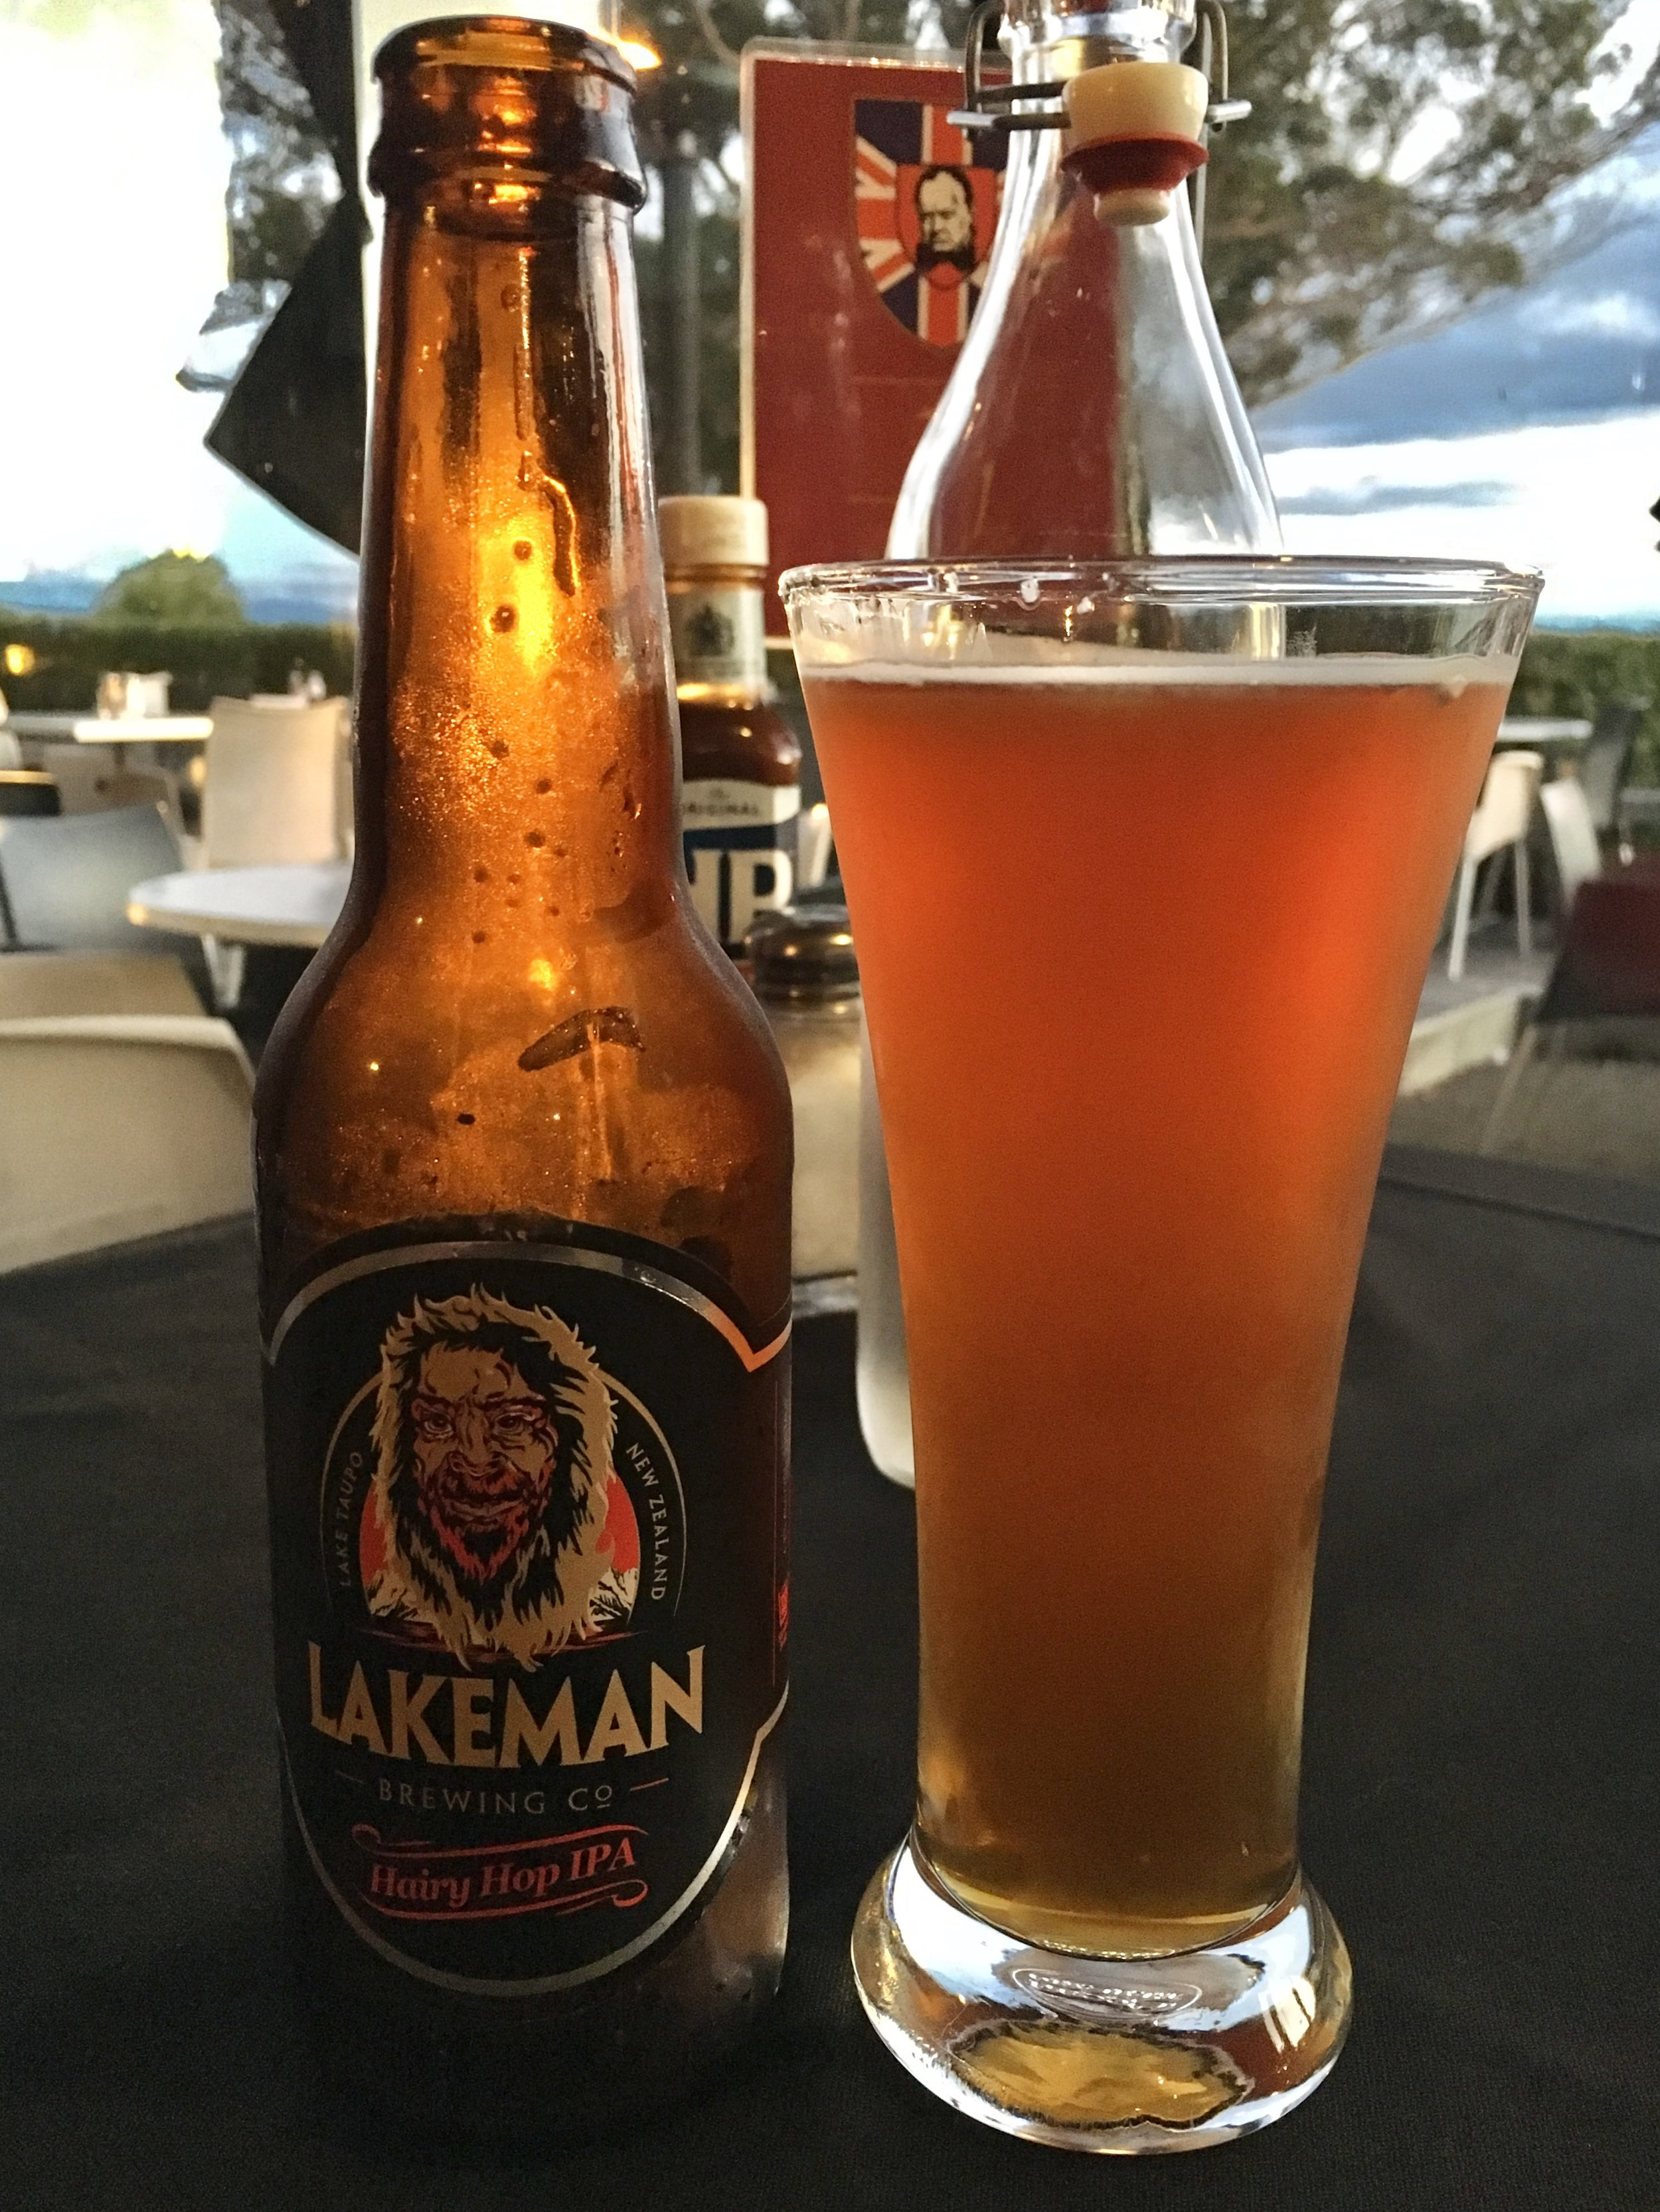 Finally found some good local craft beer! The Lakeman is the local big foot equivalent.